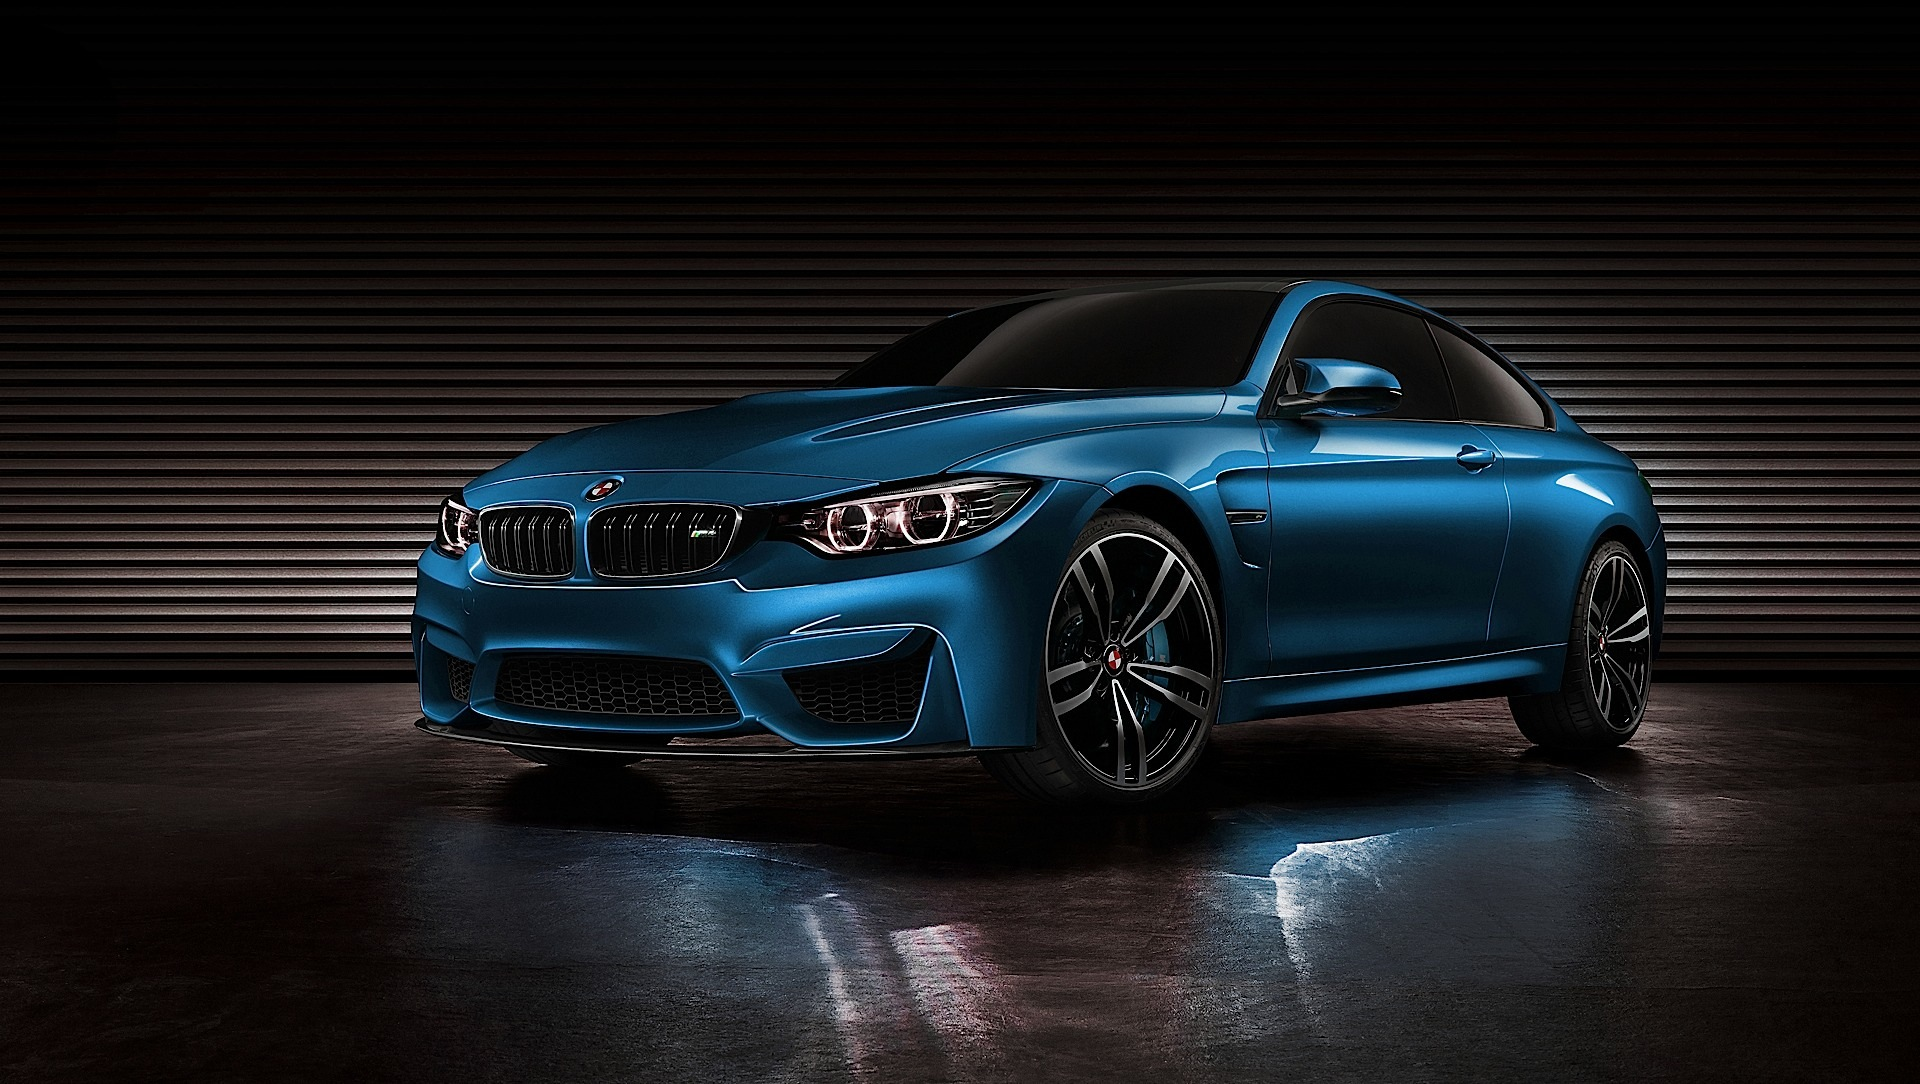 Auto Paint Colors >> Your Rainbow Collection of BMW M4 Photos Is Here - autoevolution